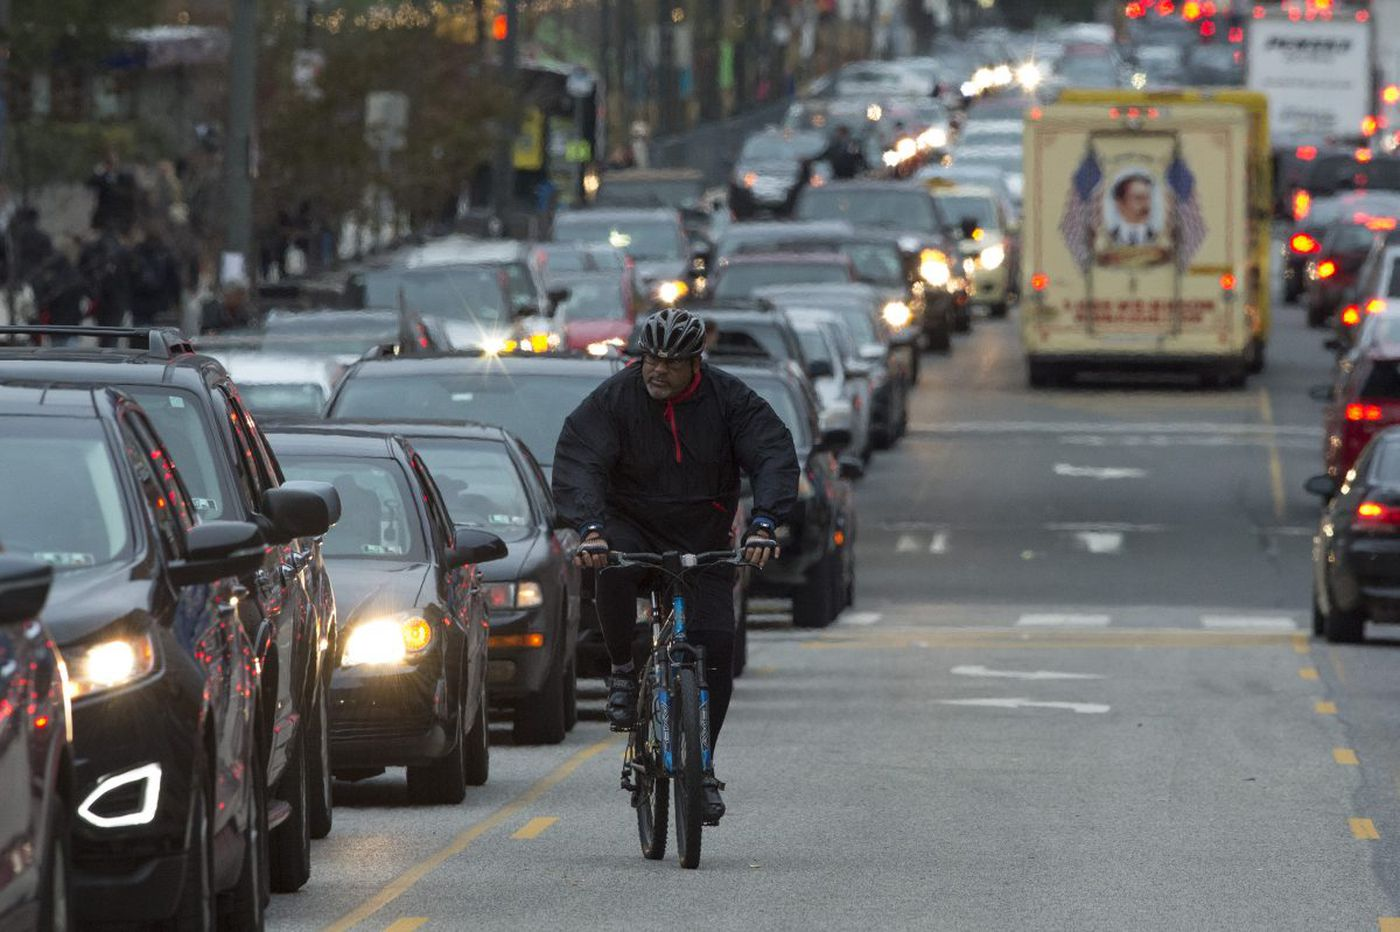 3 things Pa. legislature can do right now to make Philly streets safer | Opinion